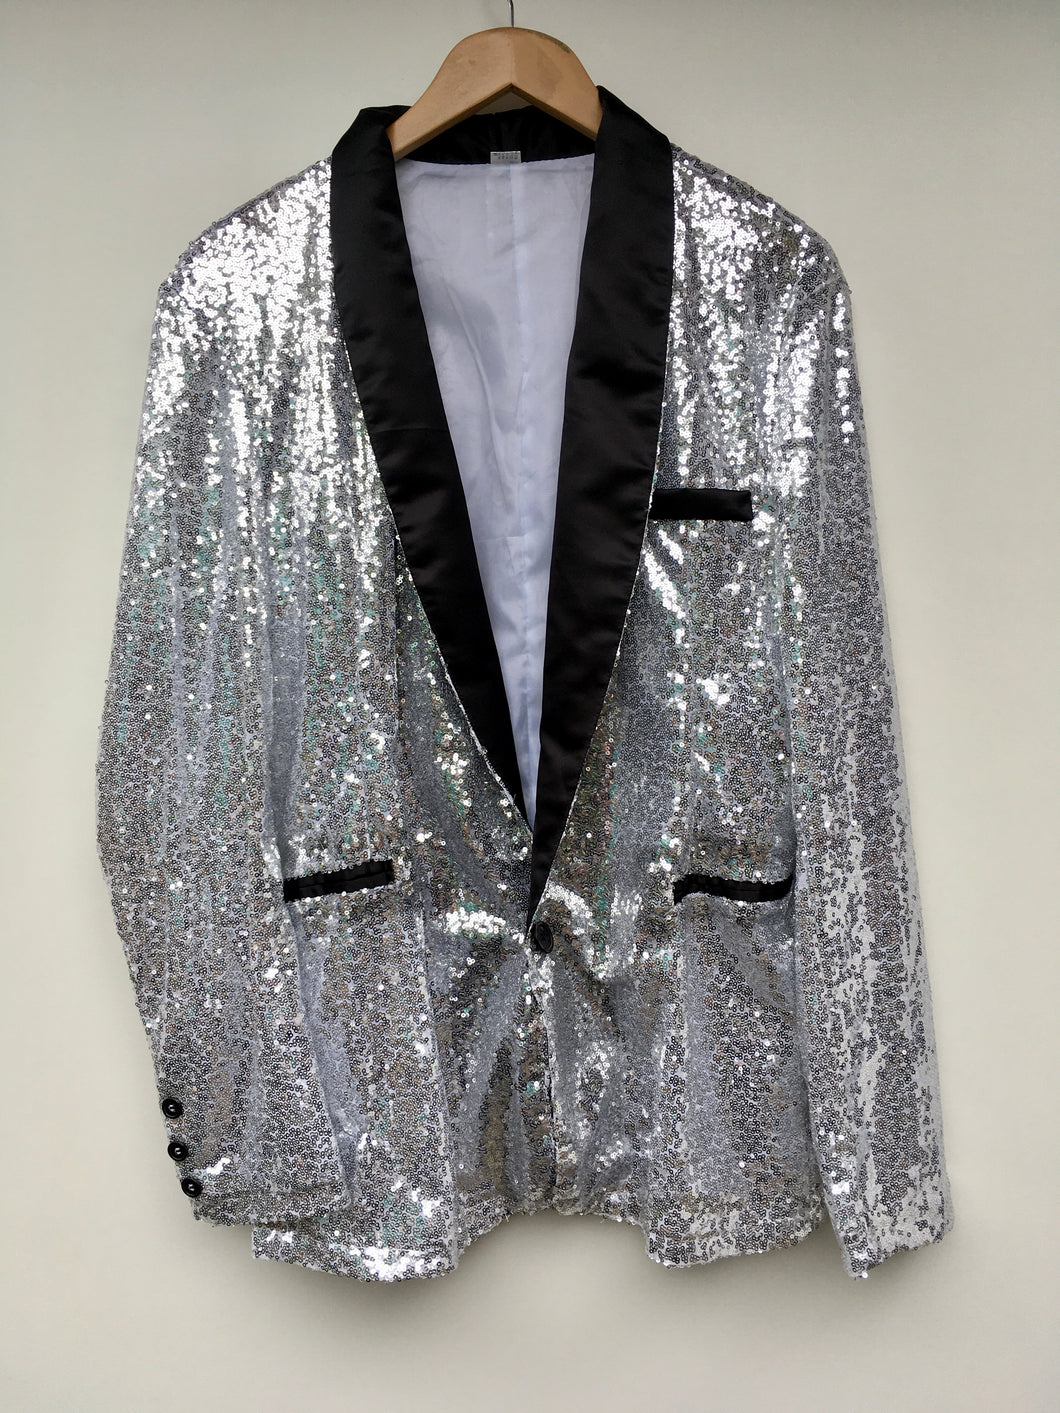 Silver sequin smoking jacket